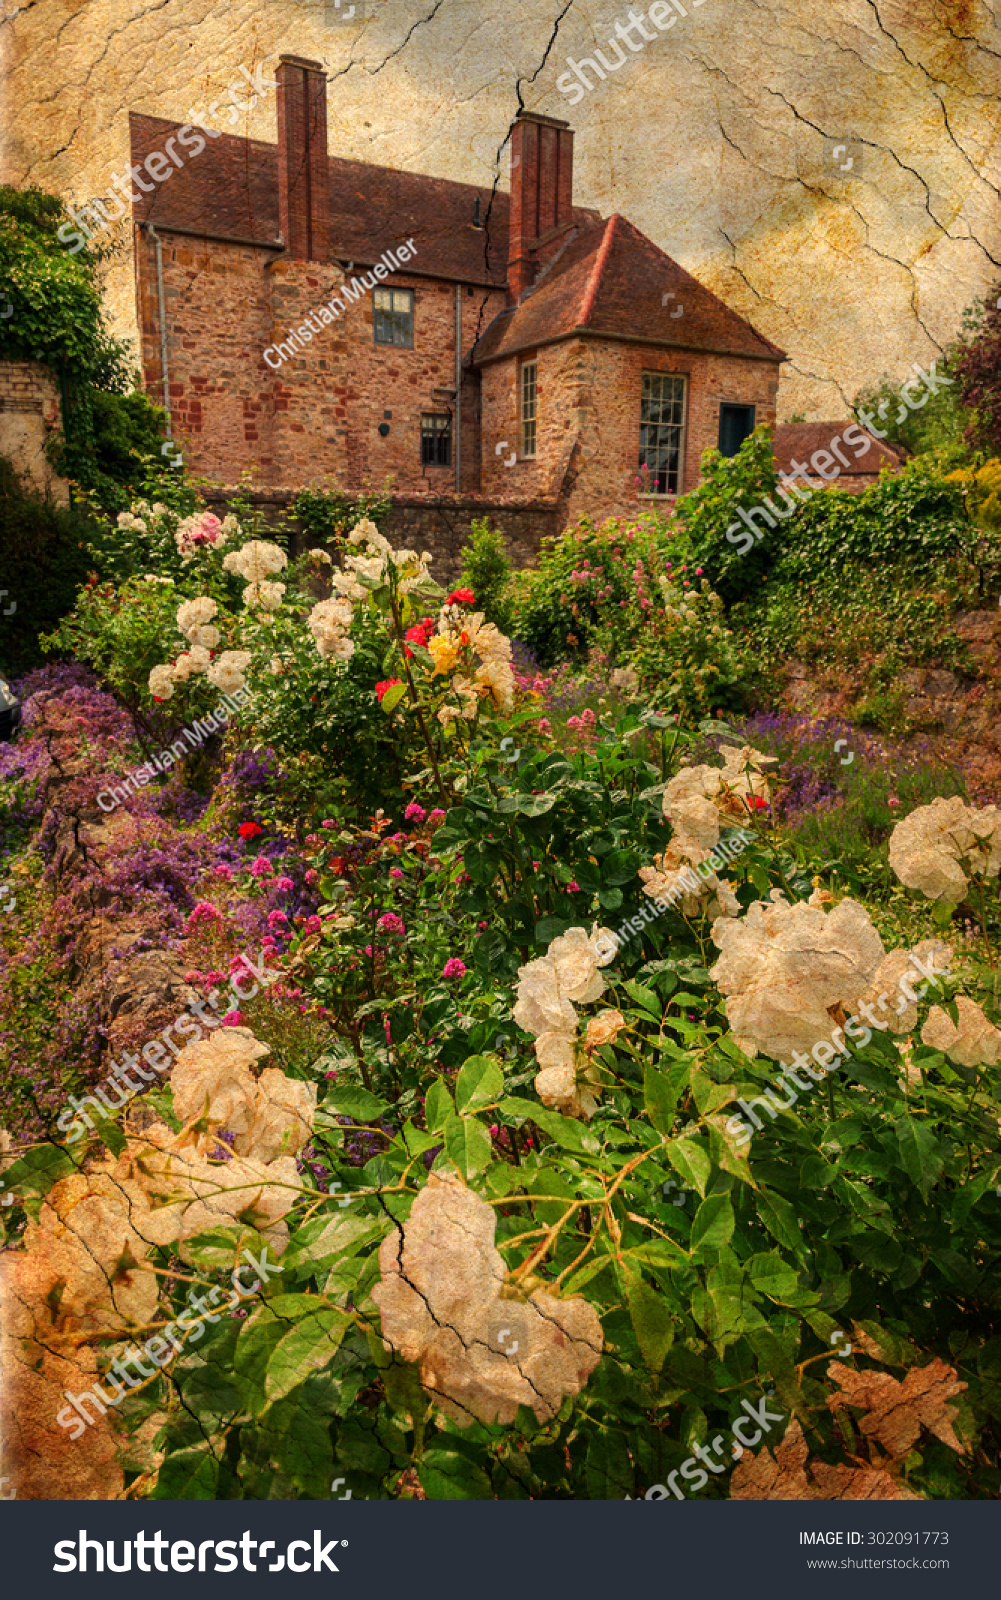 Vintage Textured Picture Roses English Cottage Stock Photo (Royalty ...